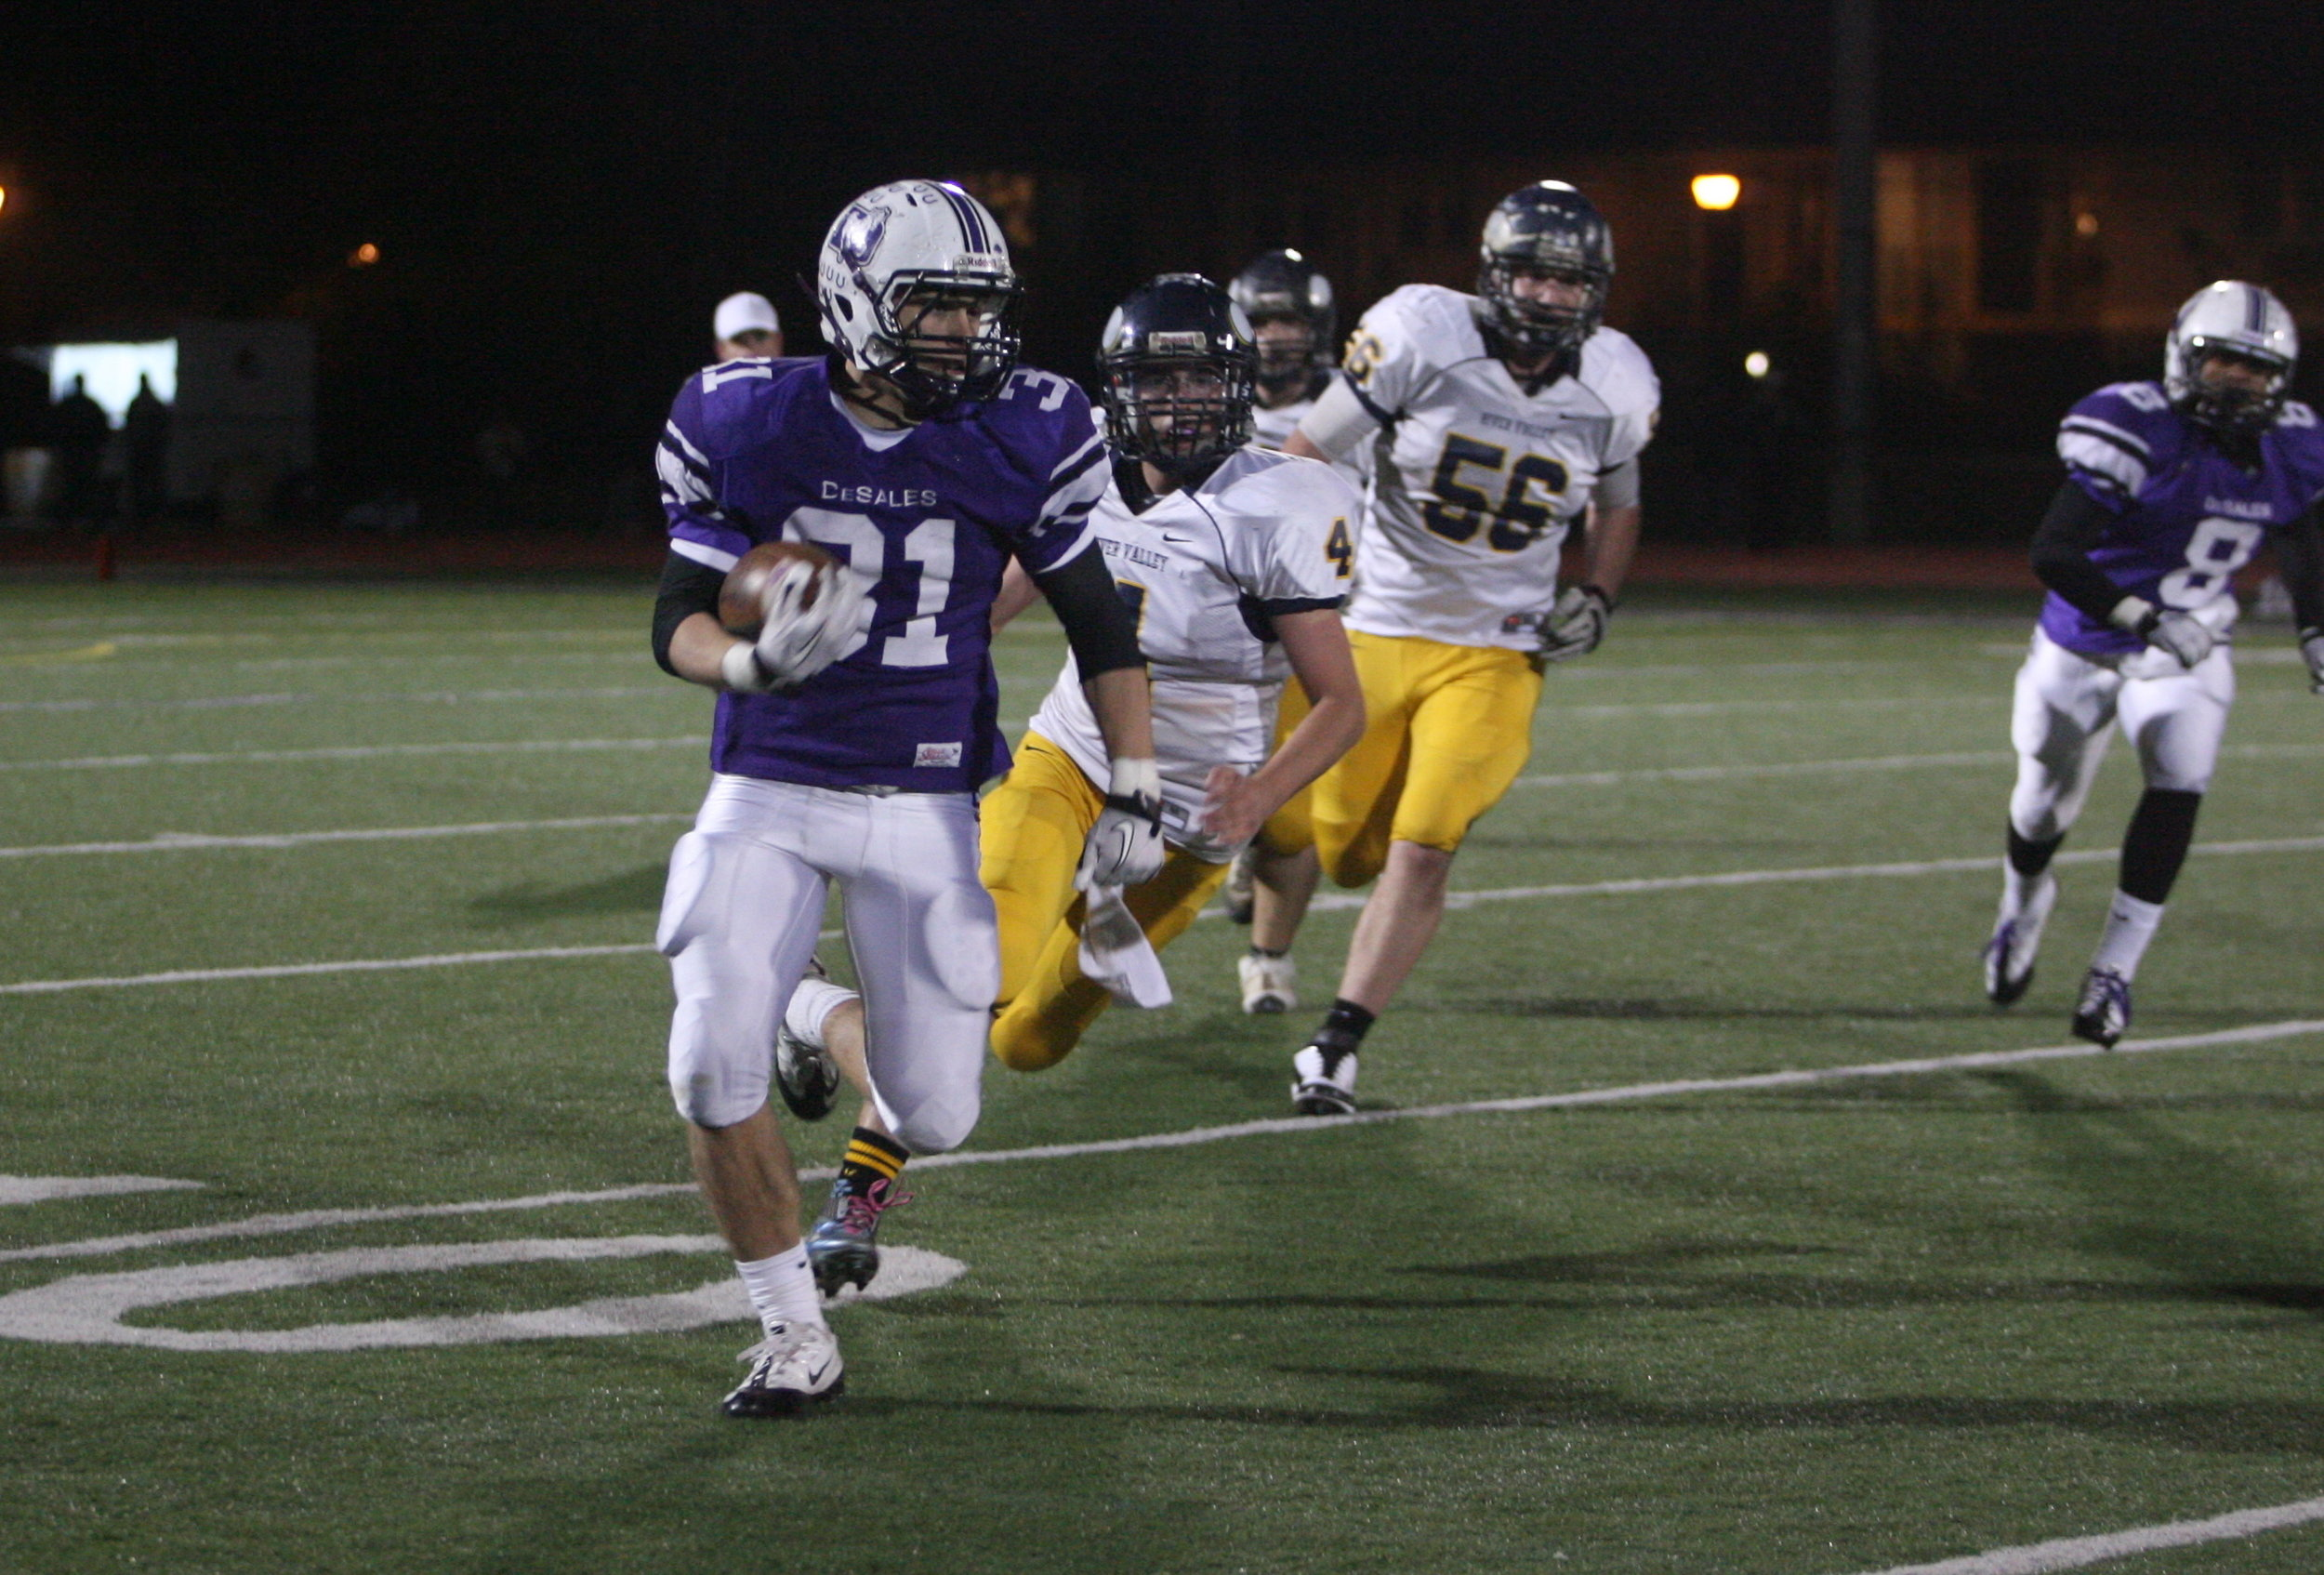 Blubaugh carries it in a Regional Quarterfinal against River Valley in 2011